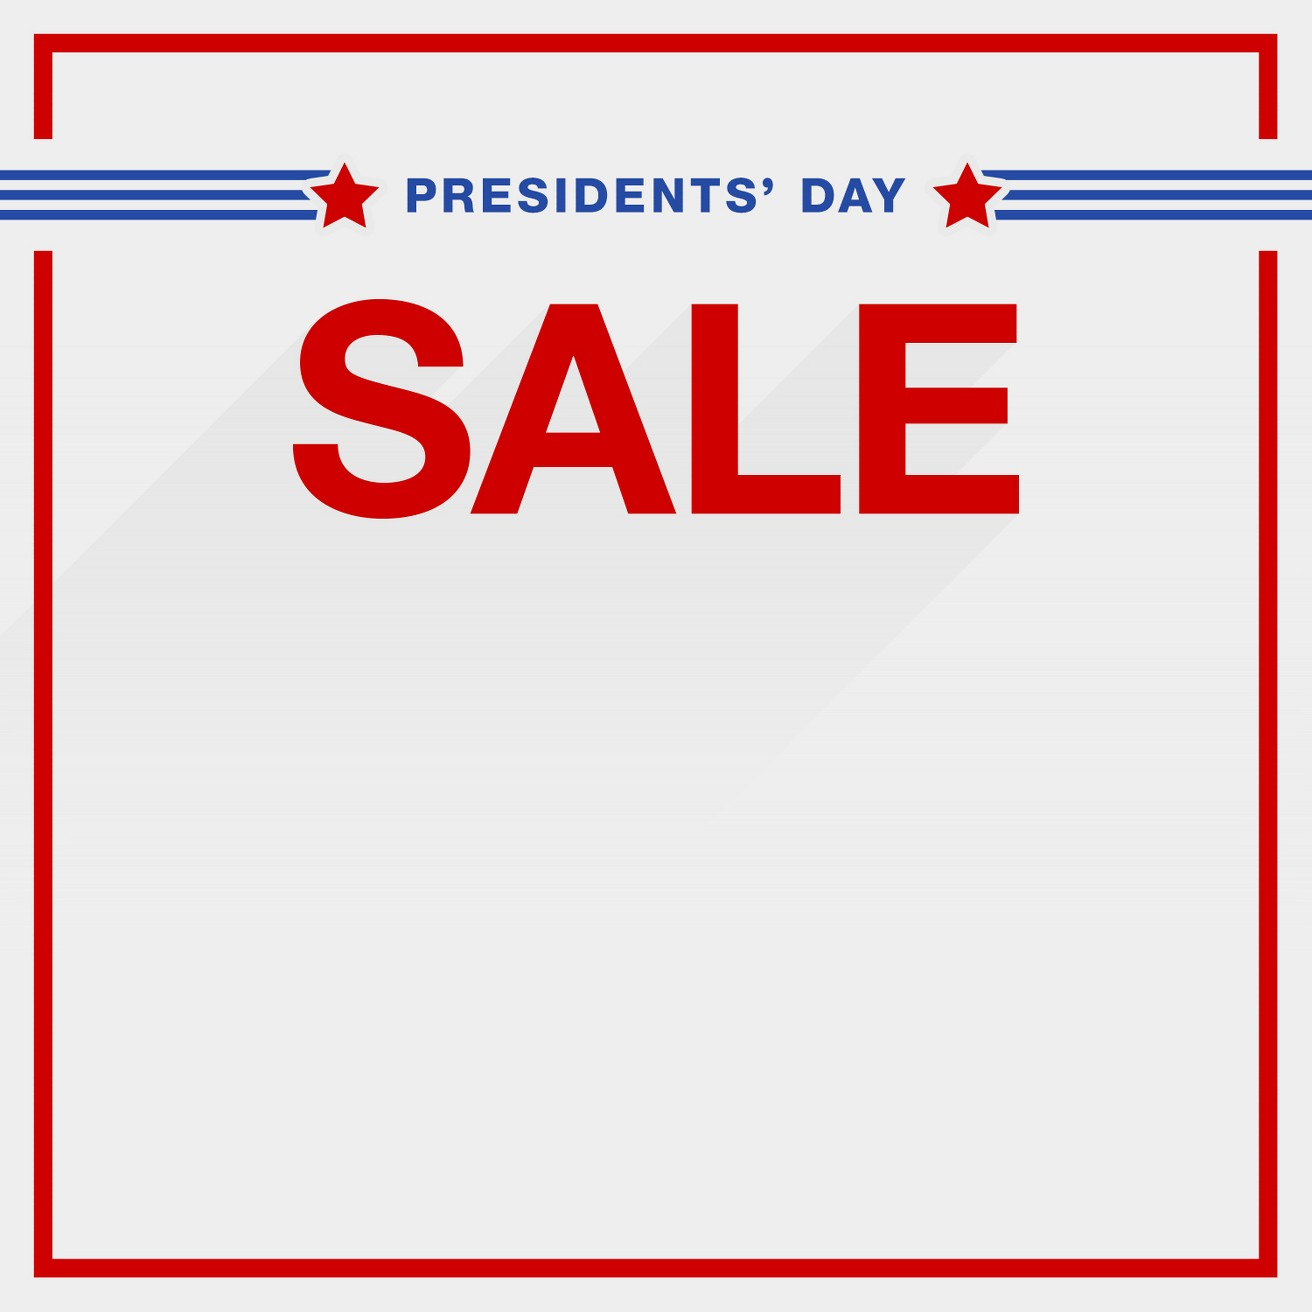 Presidents Day Ads. We don't have any Presidents Day ads or print ads for this year yet, but check back in the weeks prior to Presidents Day when we will have the latest print ads available.